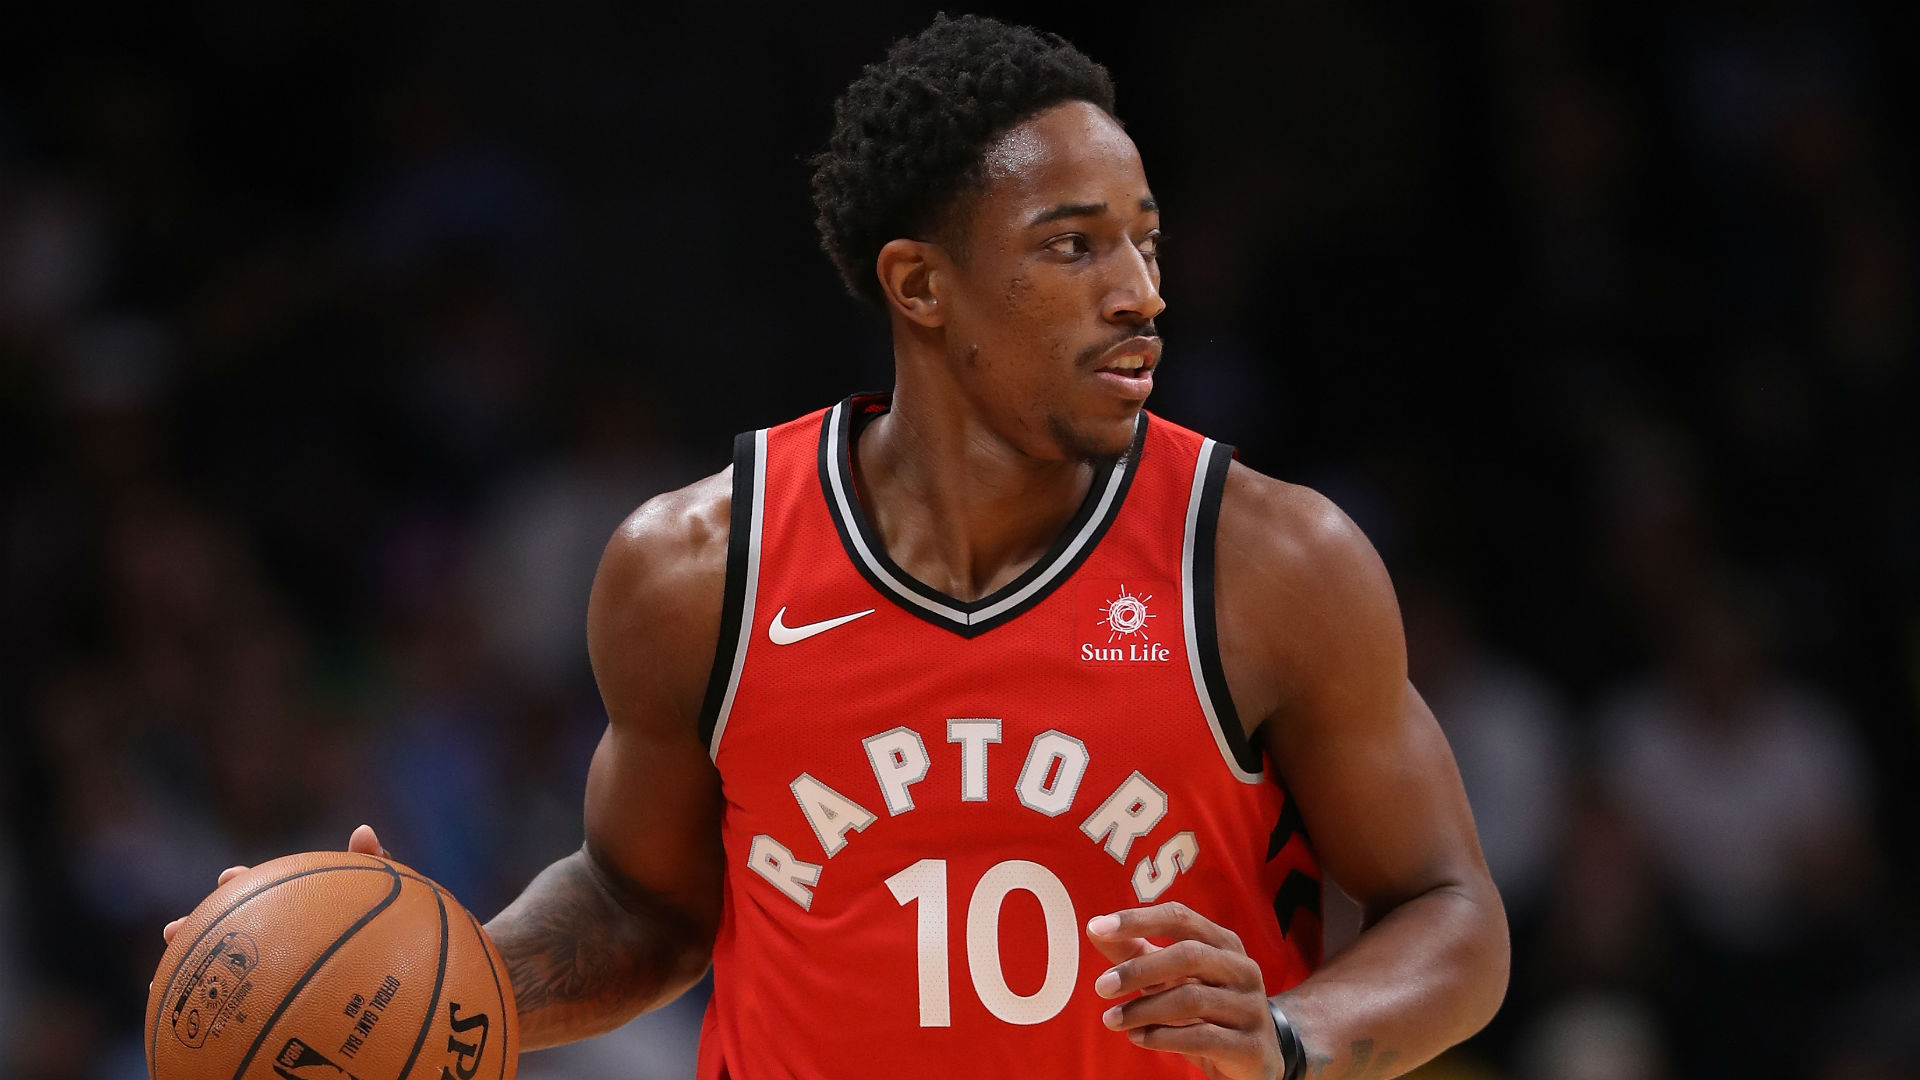 Raptors end Game 1 futility by beating Wizards